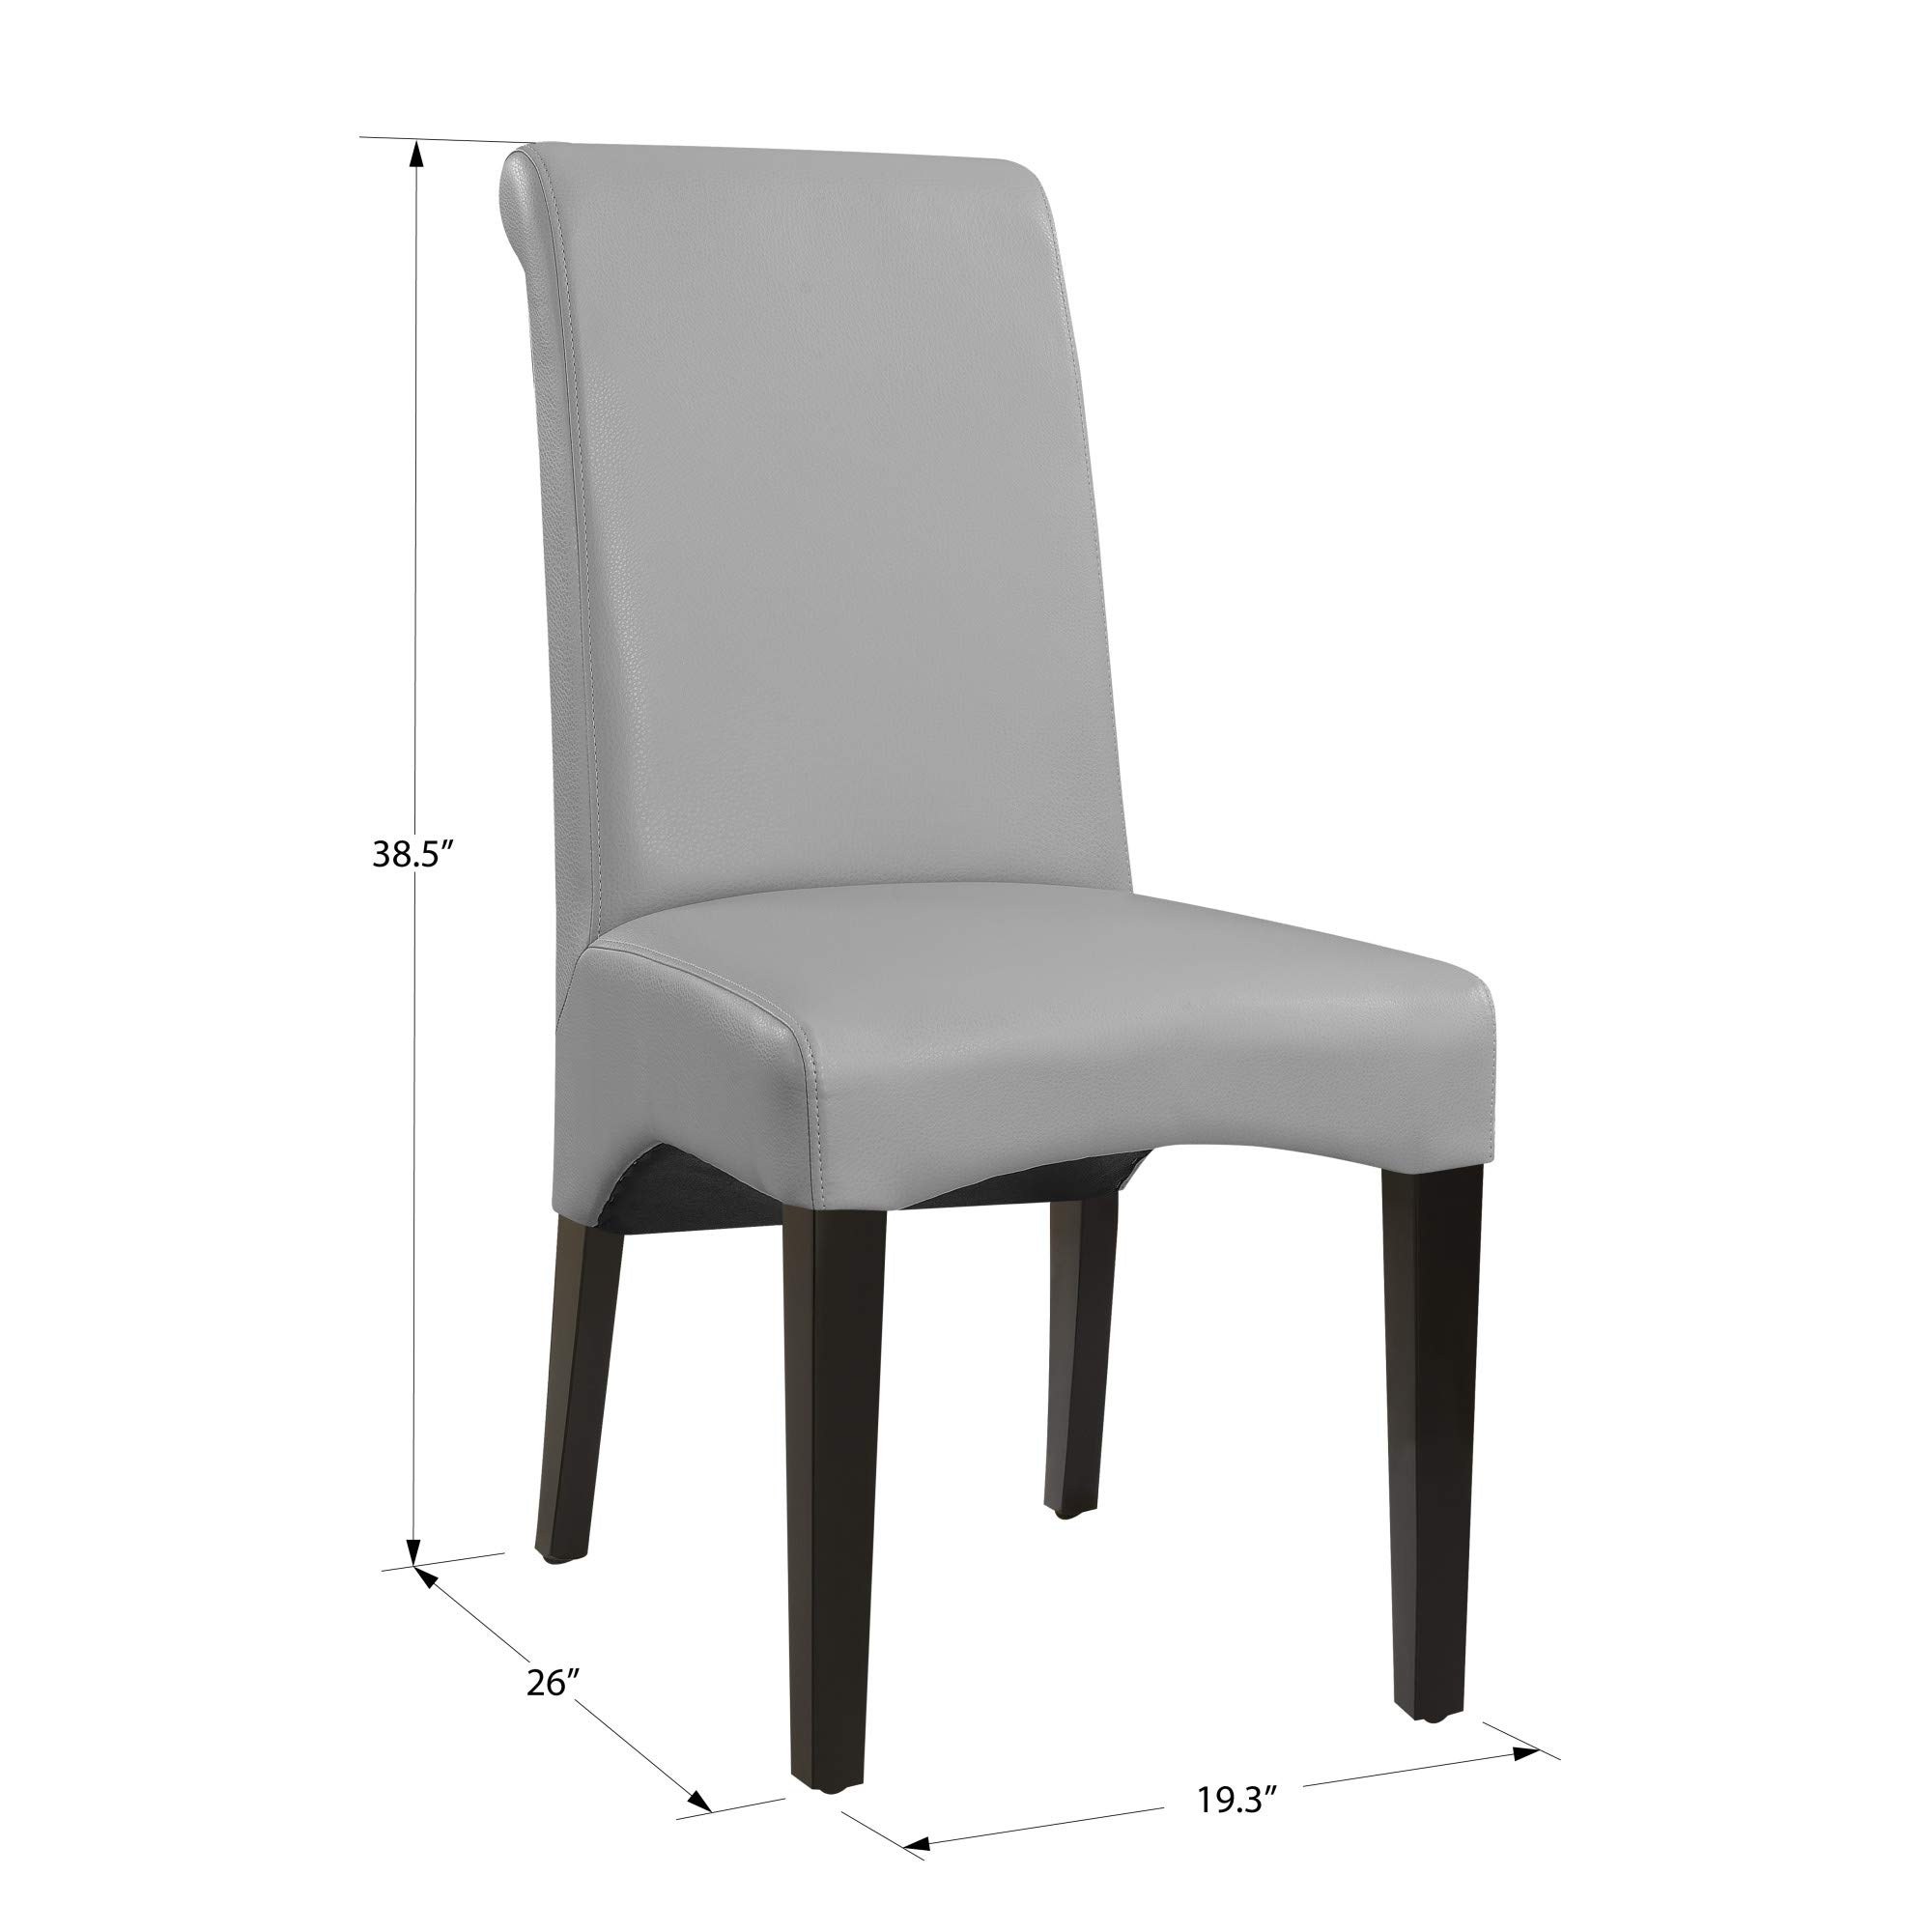 Livingston II Upholstered Dining Chair in Soft Gray with Faux Leather Upholstery And Curved Back, Set of Two, by Artum Hill by Artum Hill (Image #2)